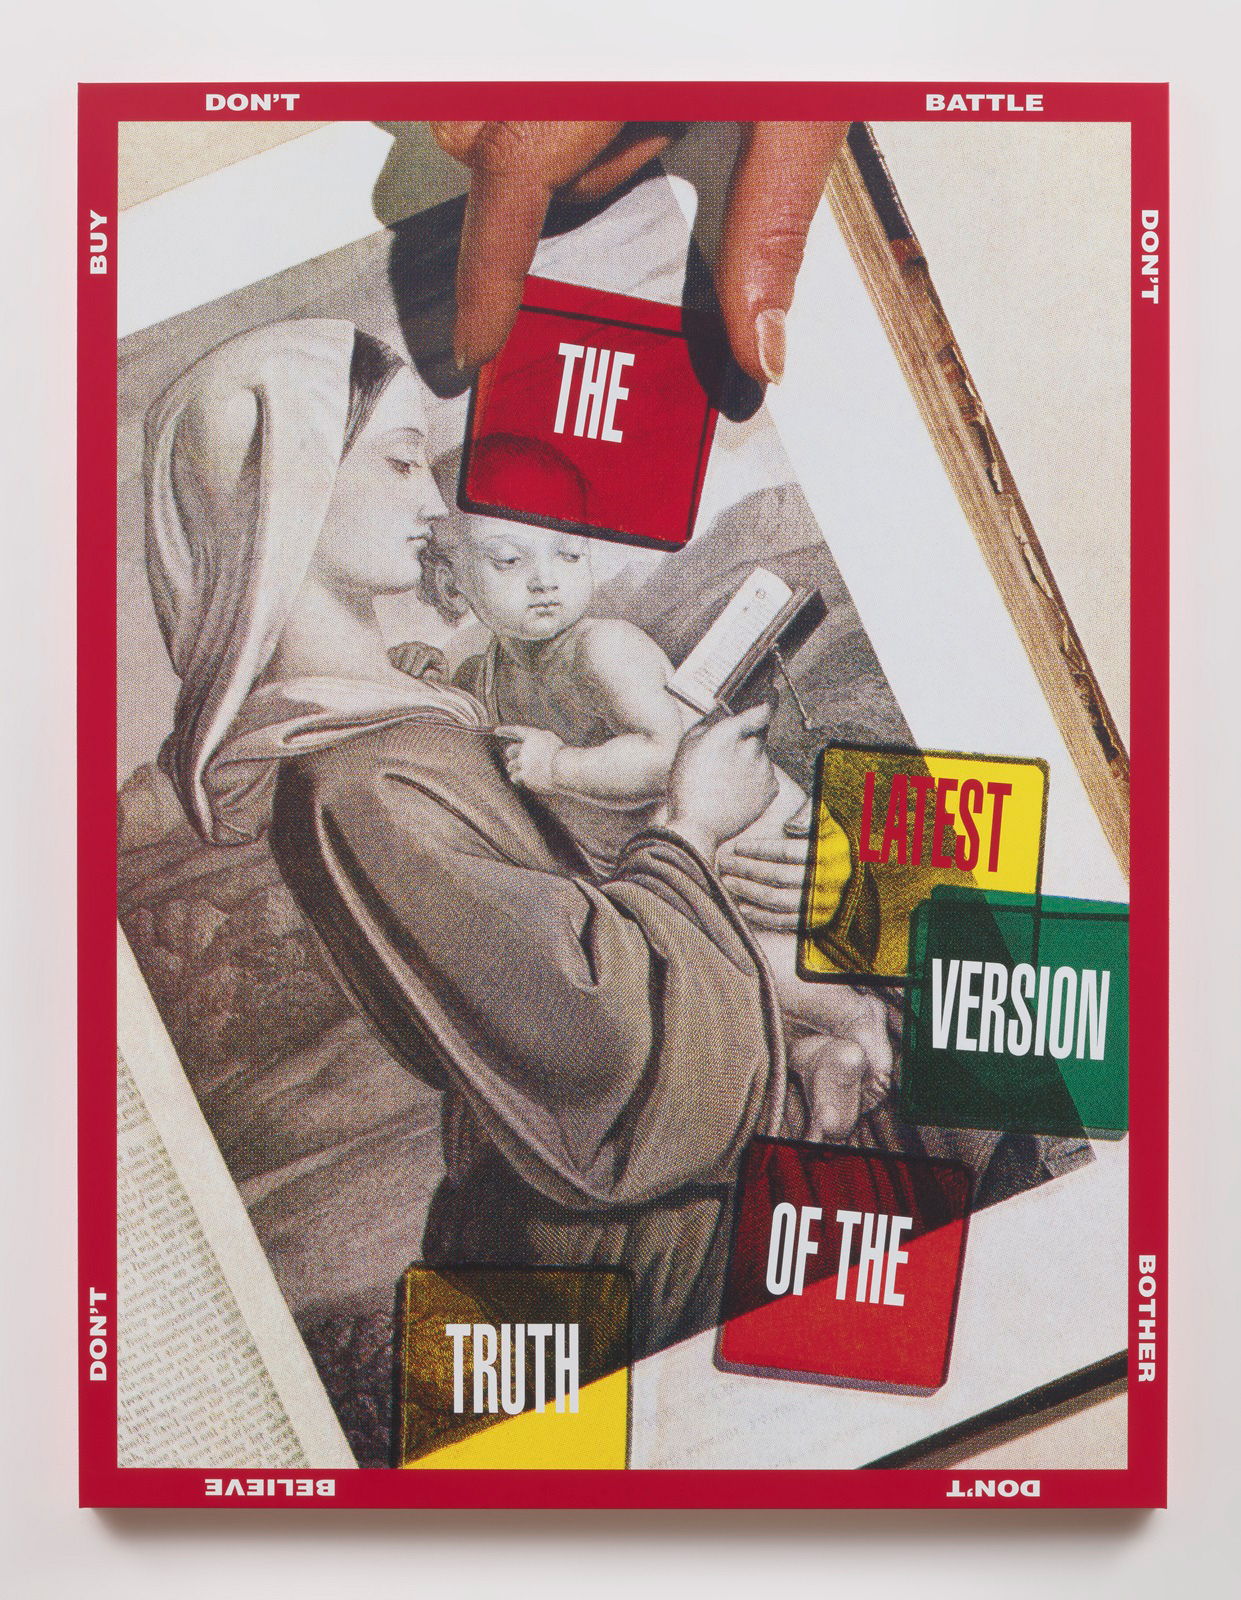 Barbara Kruger, Untitled (The_latest_version_of_the_truth), 2018, Digital print on vinyl, 226.1 x 173cm | Barbara Kruger | STIRworld